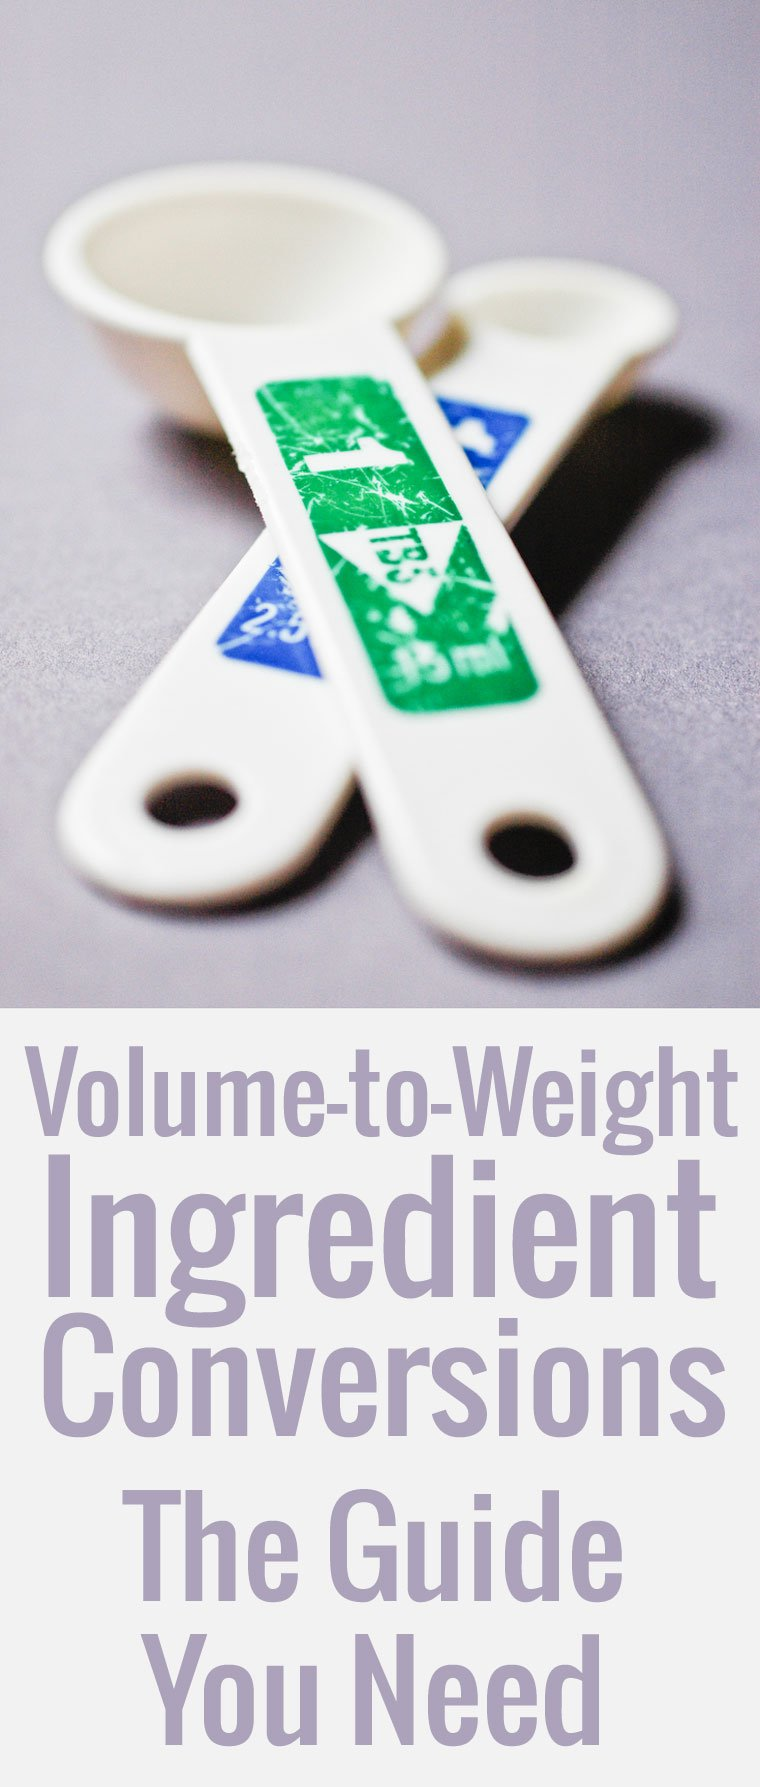 A handy guide to Volume-to-Weight Conversions, ingredient by ingredient, so